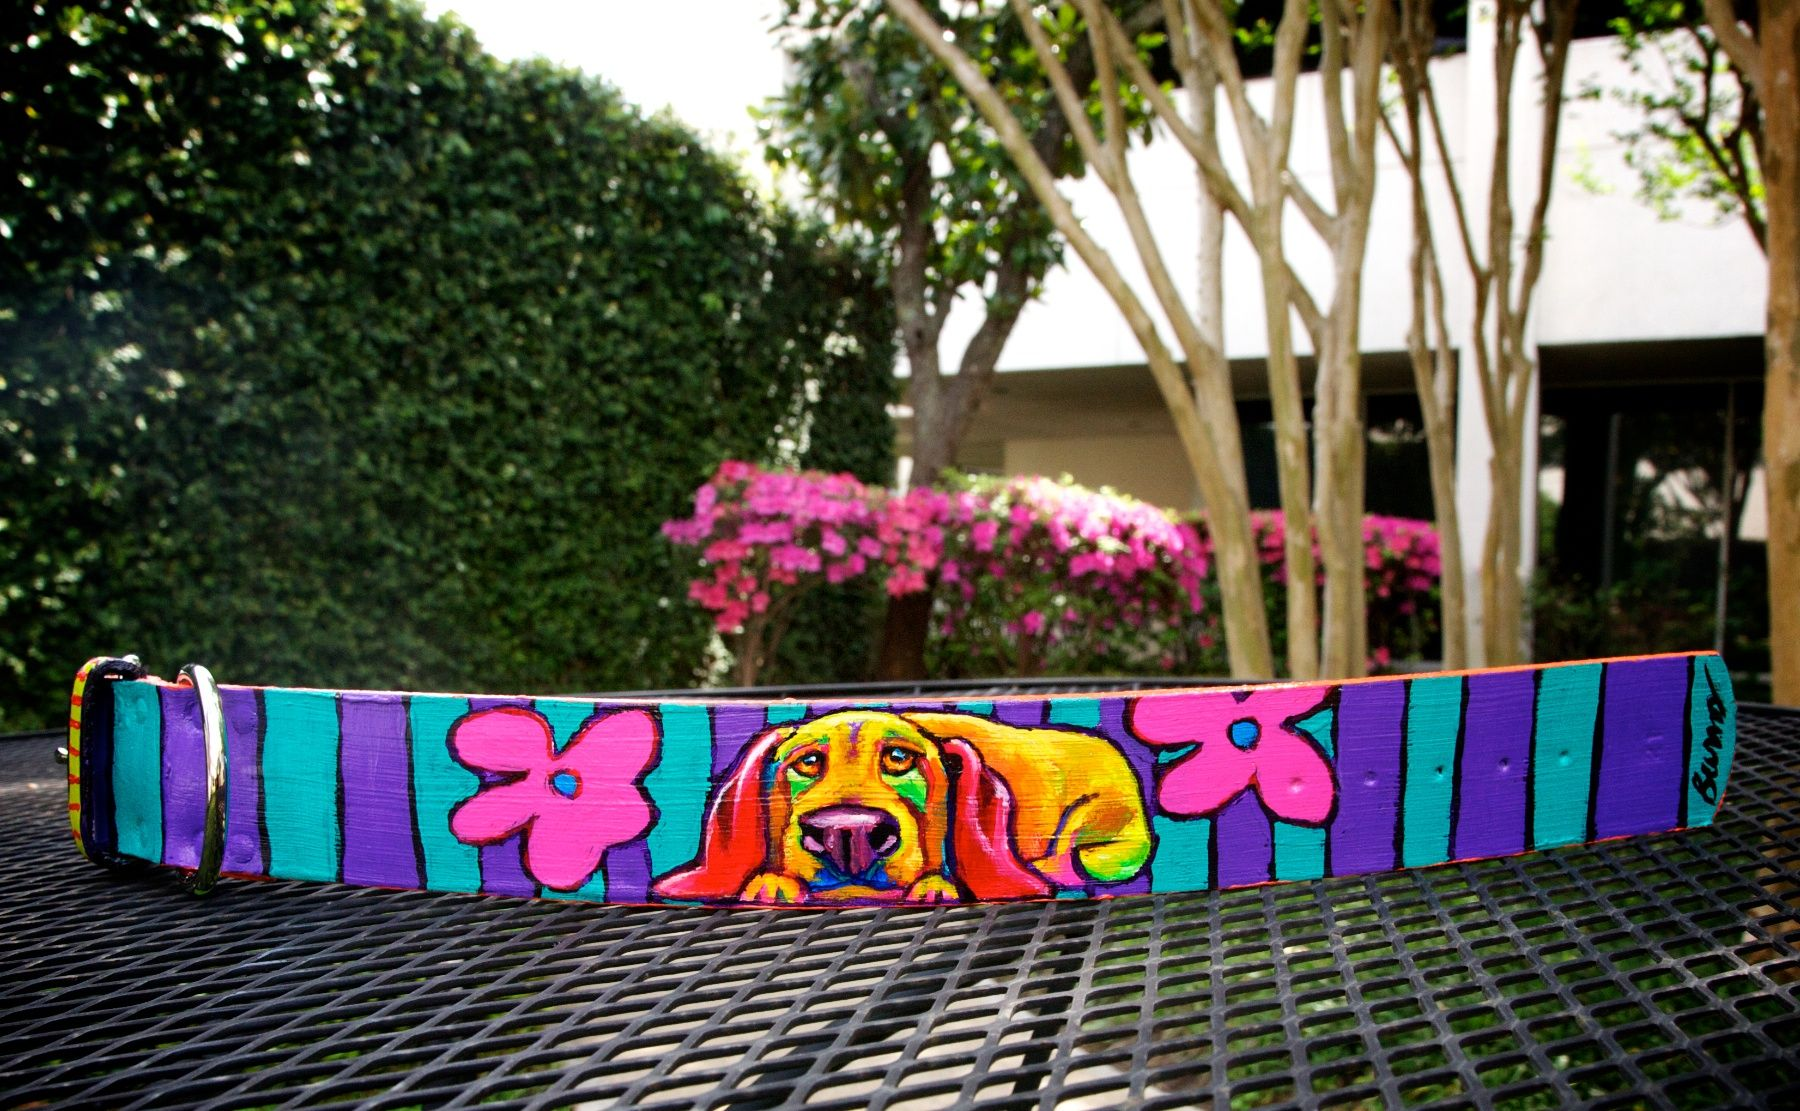 One-of-a-kind piece by artist Ron Burns.